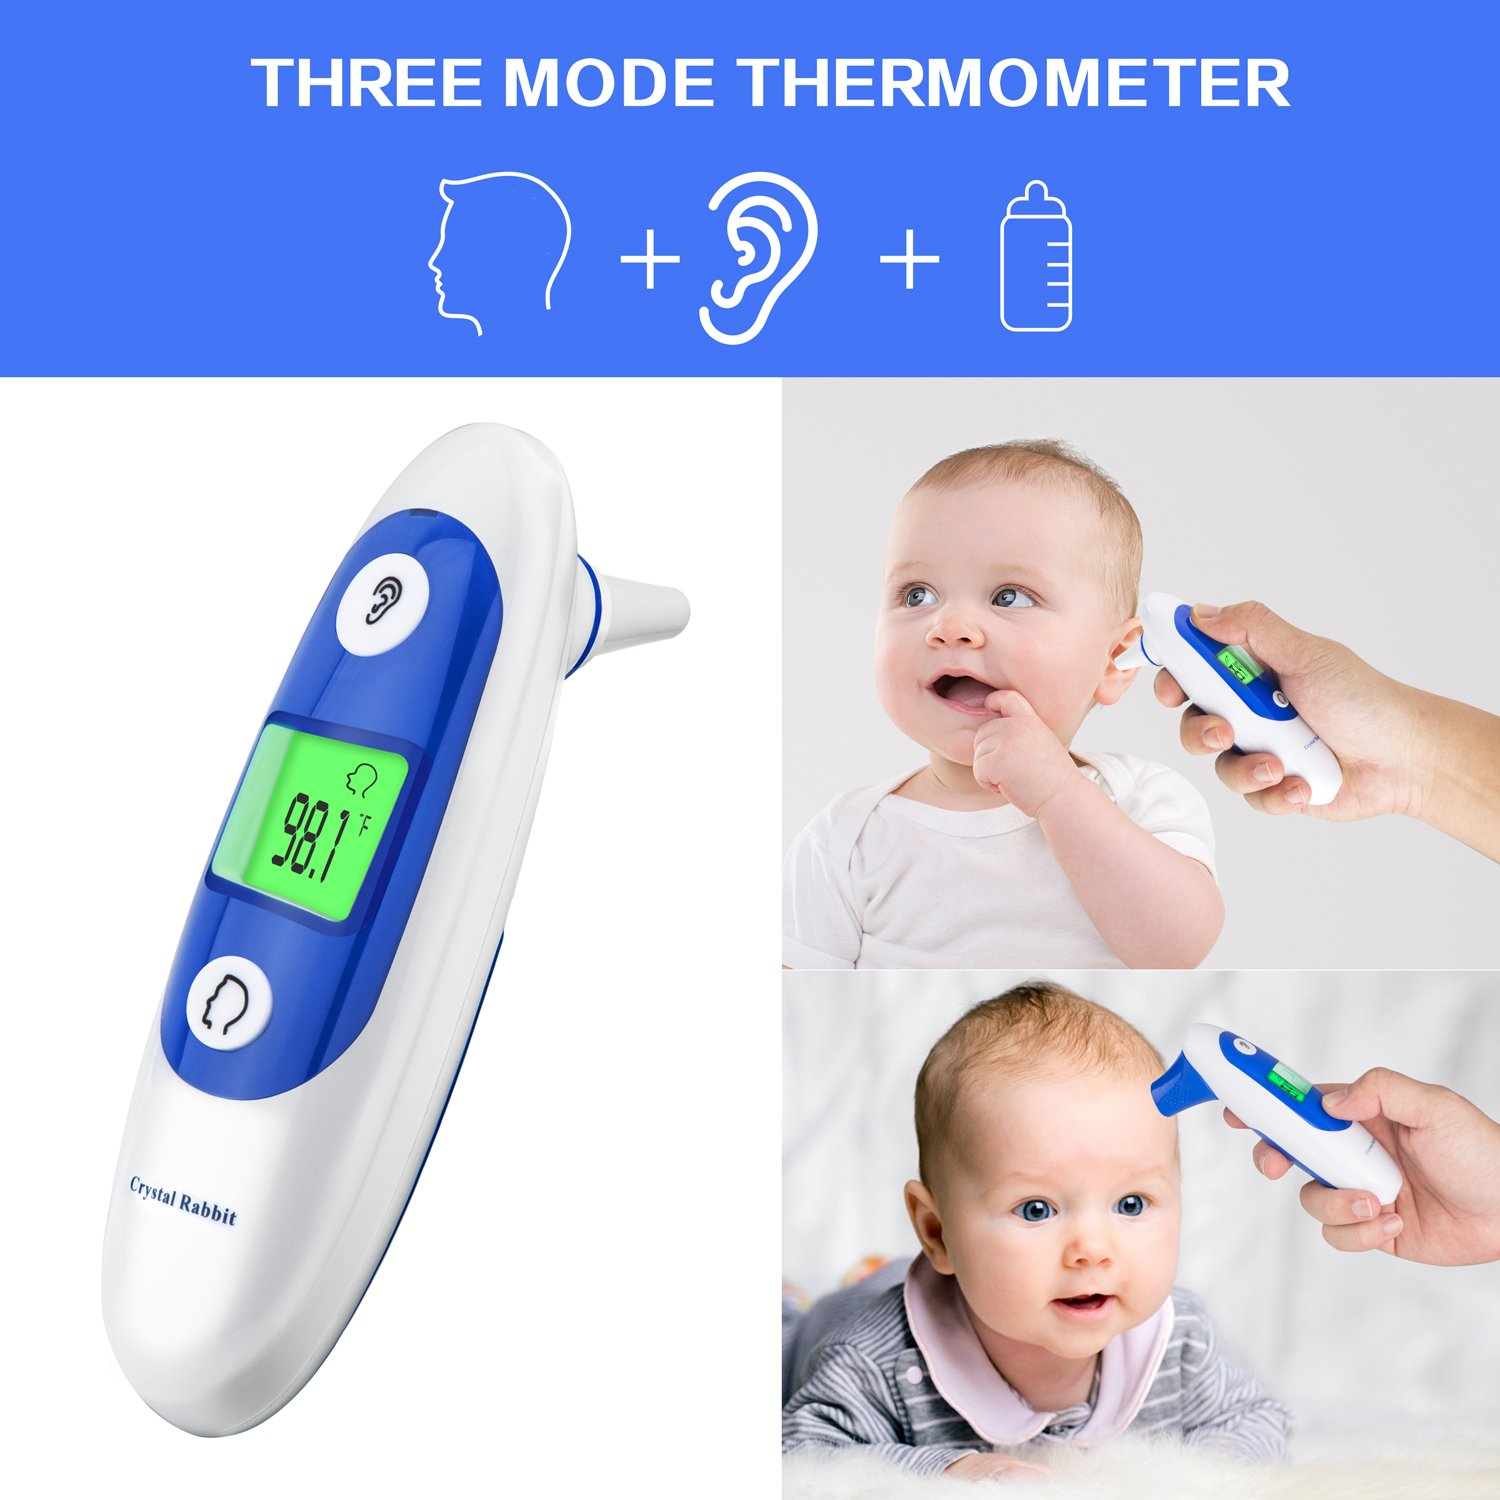 Medical Forehead and Ear Thermometer, Crystal Rabbit Infrared Digital Thermometer Suitable for Baby, Infant, Toddler and Adults with FDA and CE Approved by Crystal Rabbit (Image #4)